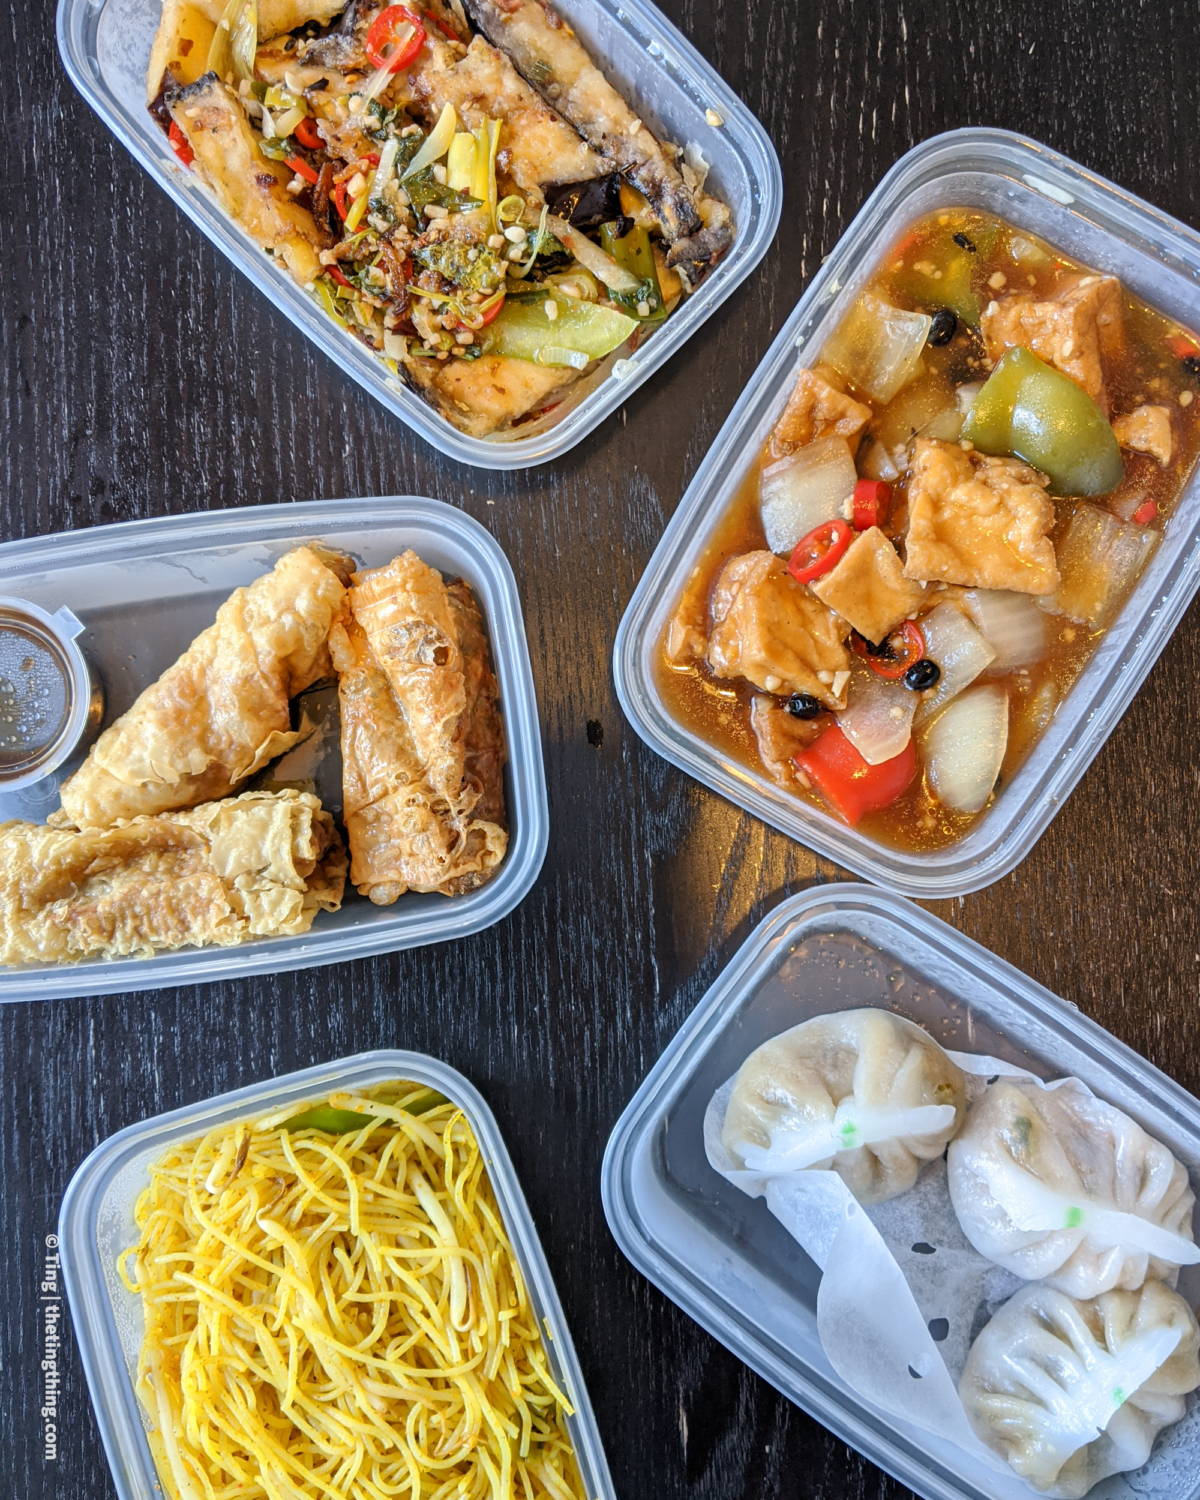 Five takeaway boxes containing a vegan Chinese takeaway delivery from Chung Ying. Each box has different foods. One has creamy white dumplings filled with veg. Another has yellow noodles. Another has deep fried crispy beancurd rolls with dipping sauce in a small pot. Another has tofu cubes and peppers in a black bean sauce. Another has aubergine and veg.